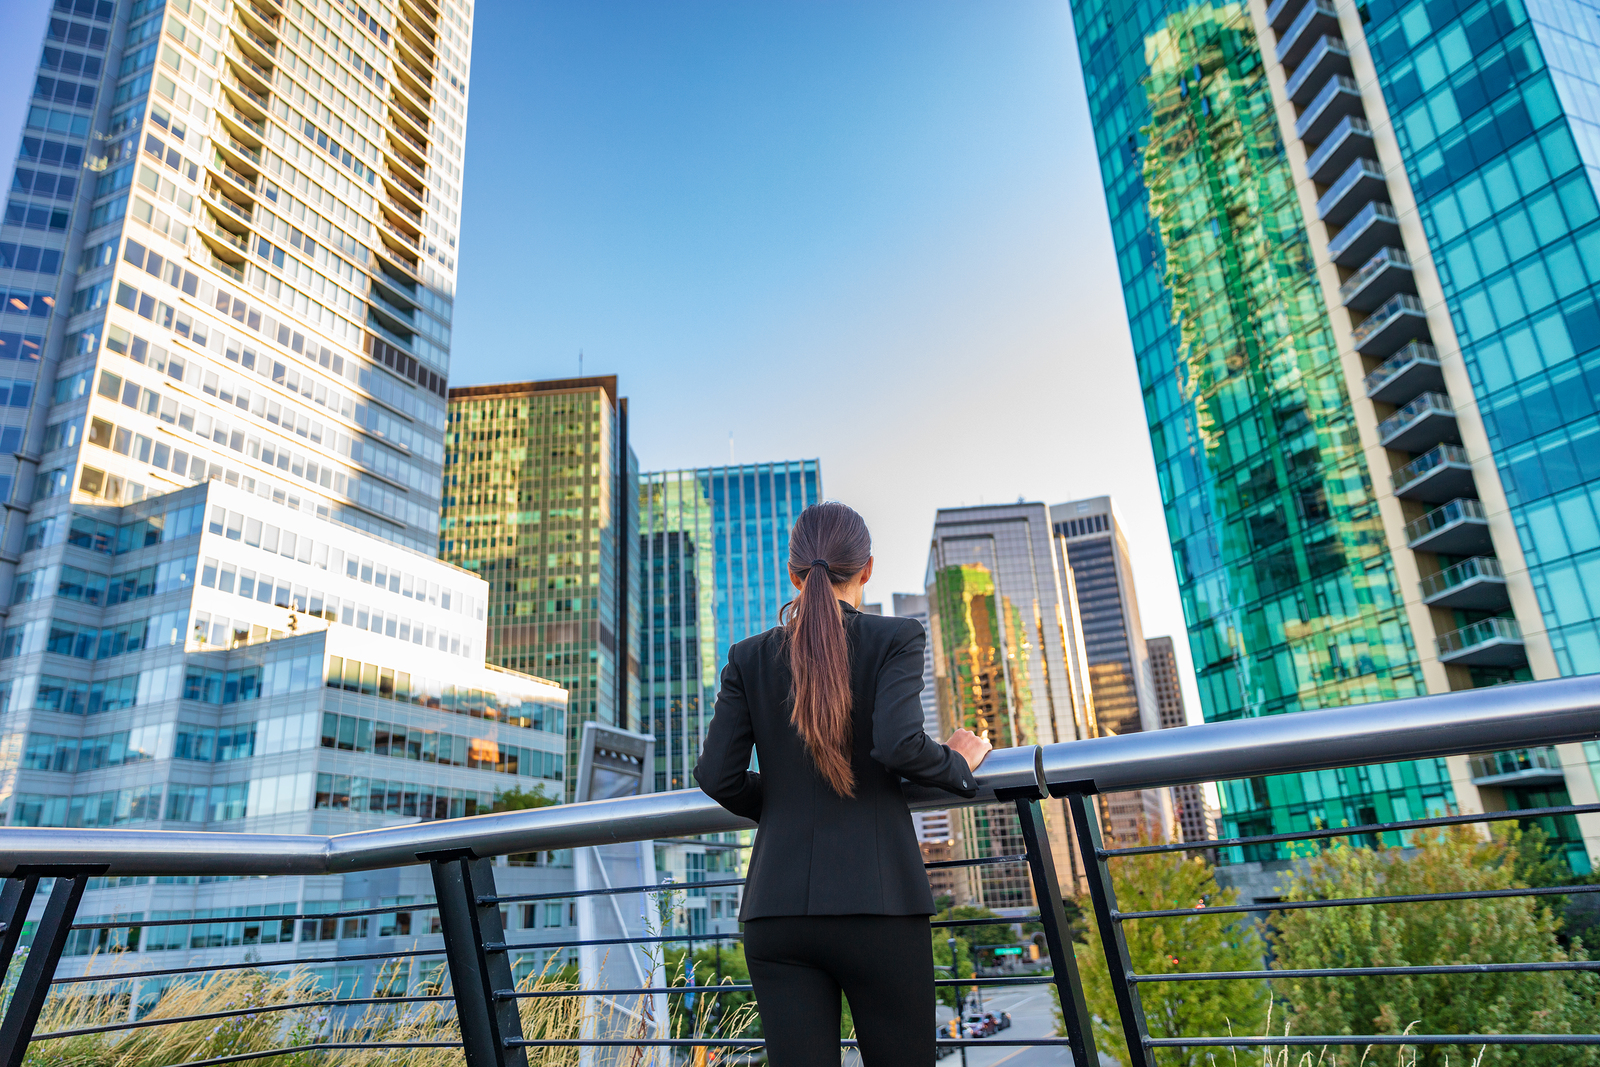 Business woman in city center looking at view of skyline skyscrapers.